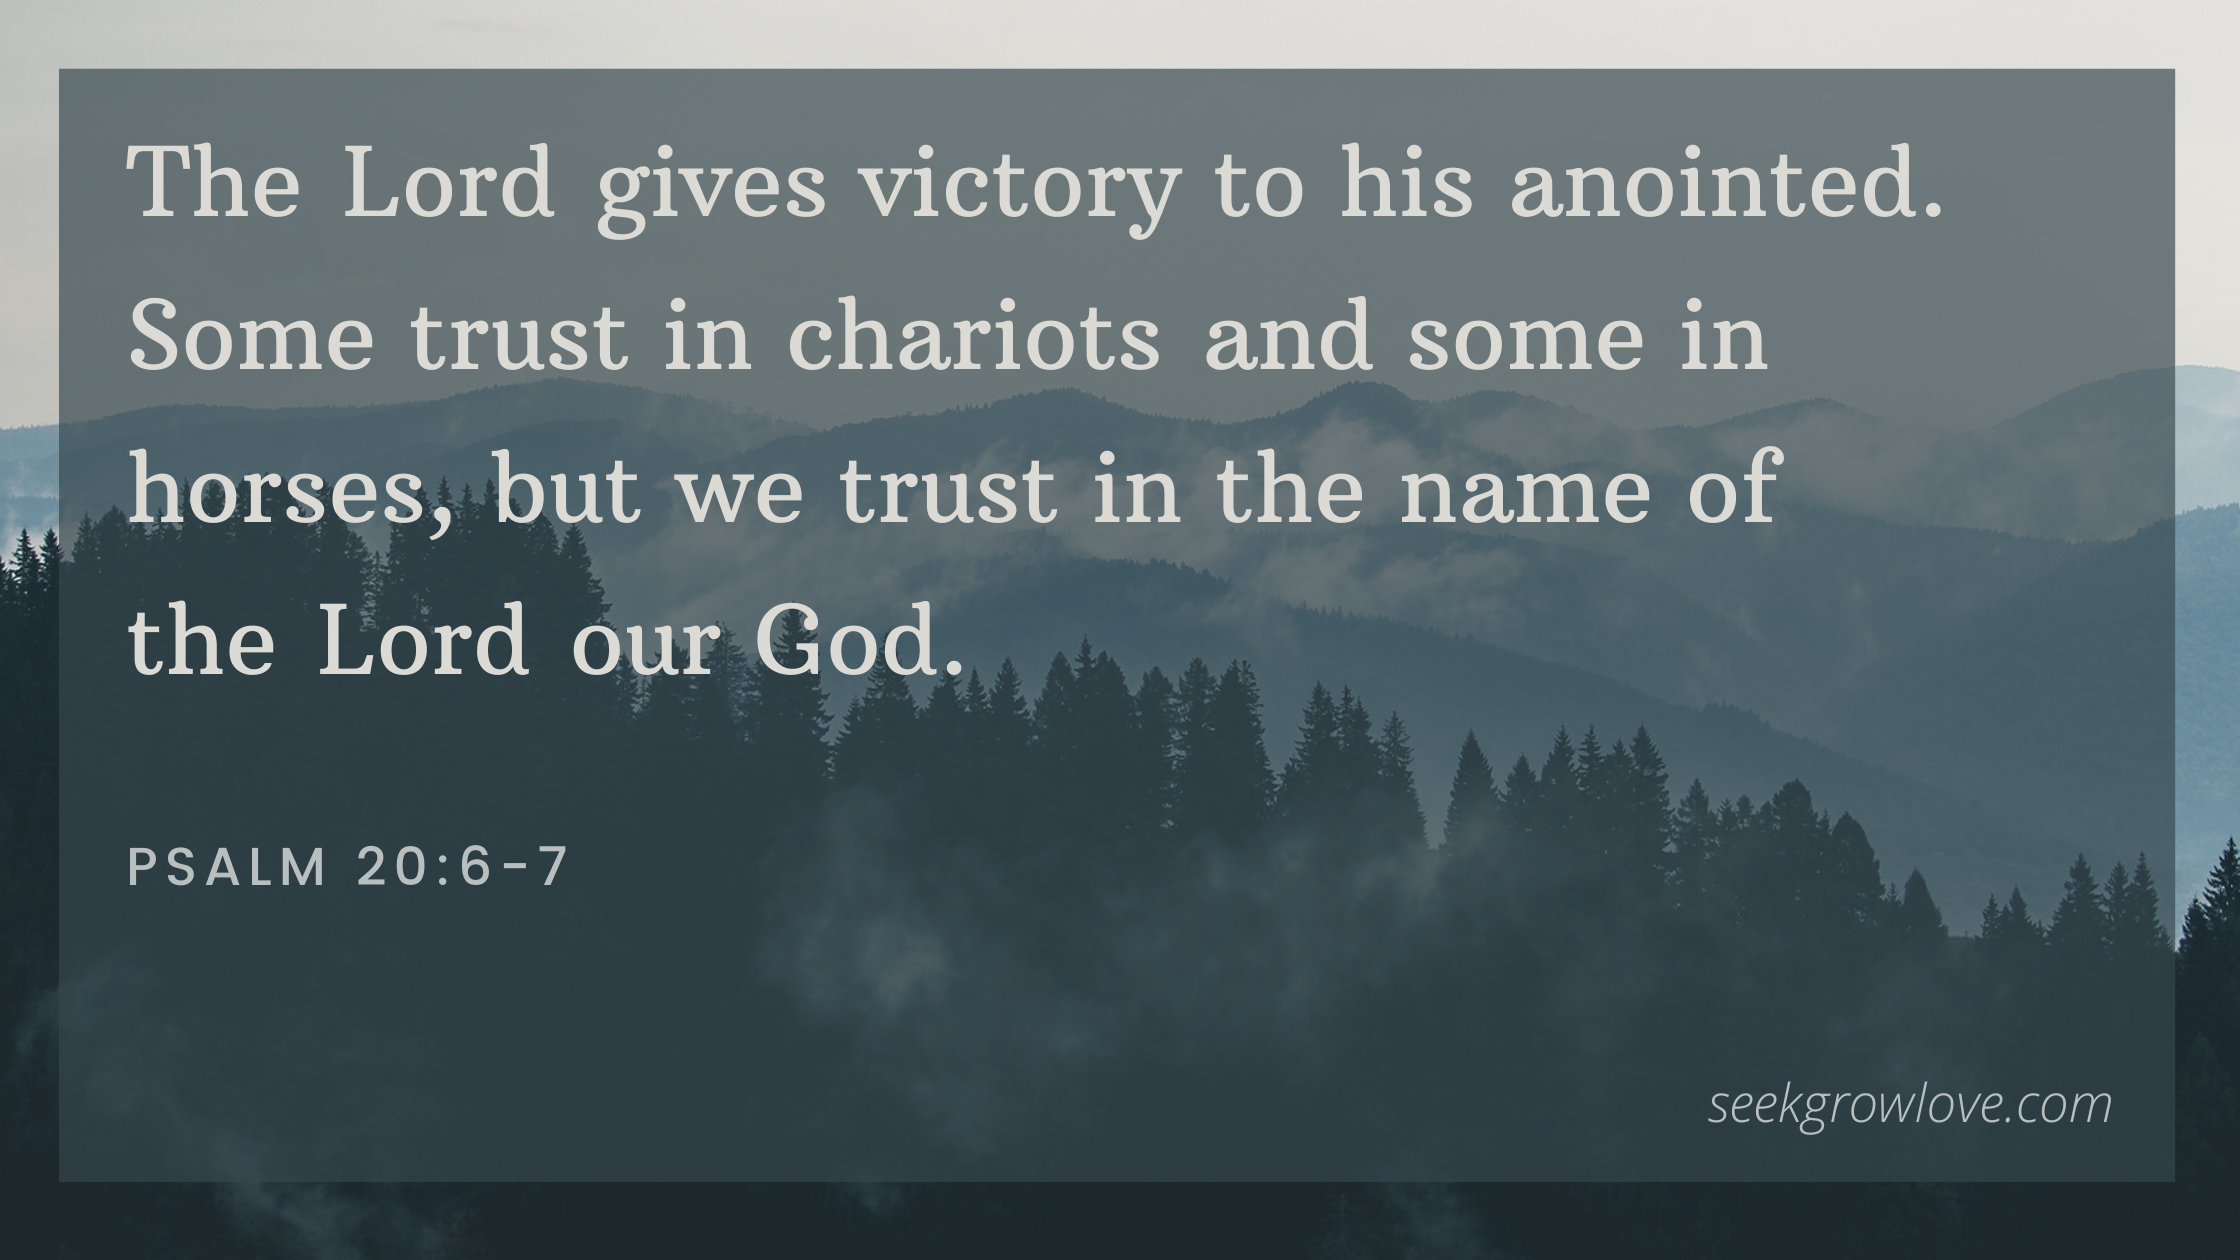 The Lord gives victory to his anointed. Some trust in chariots and some in horses, but we trust in the name of the Lord our God.